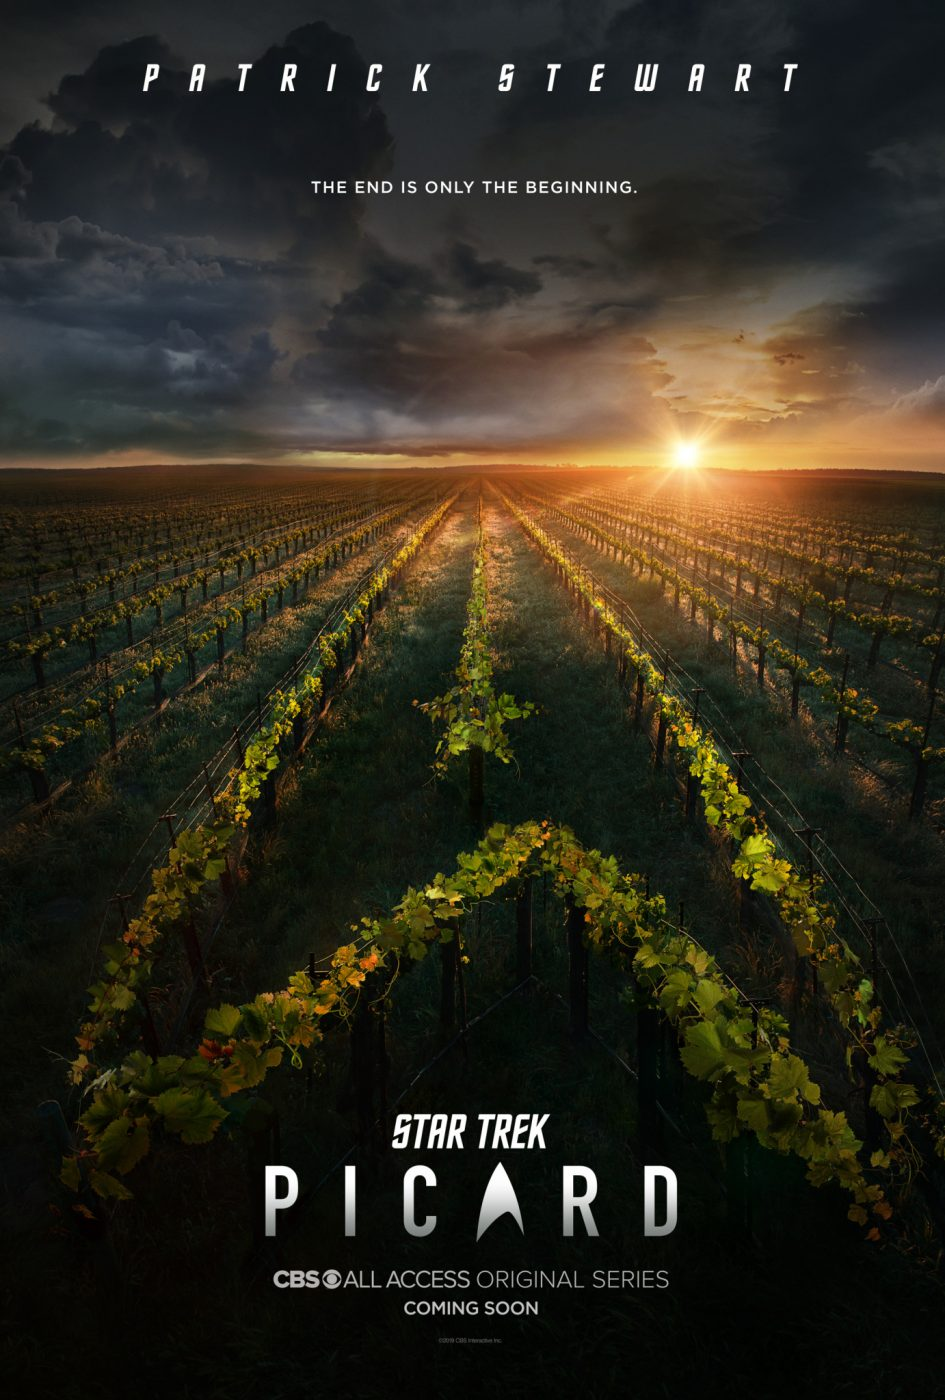 CBS Star Trek: Picard first teaser poster